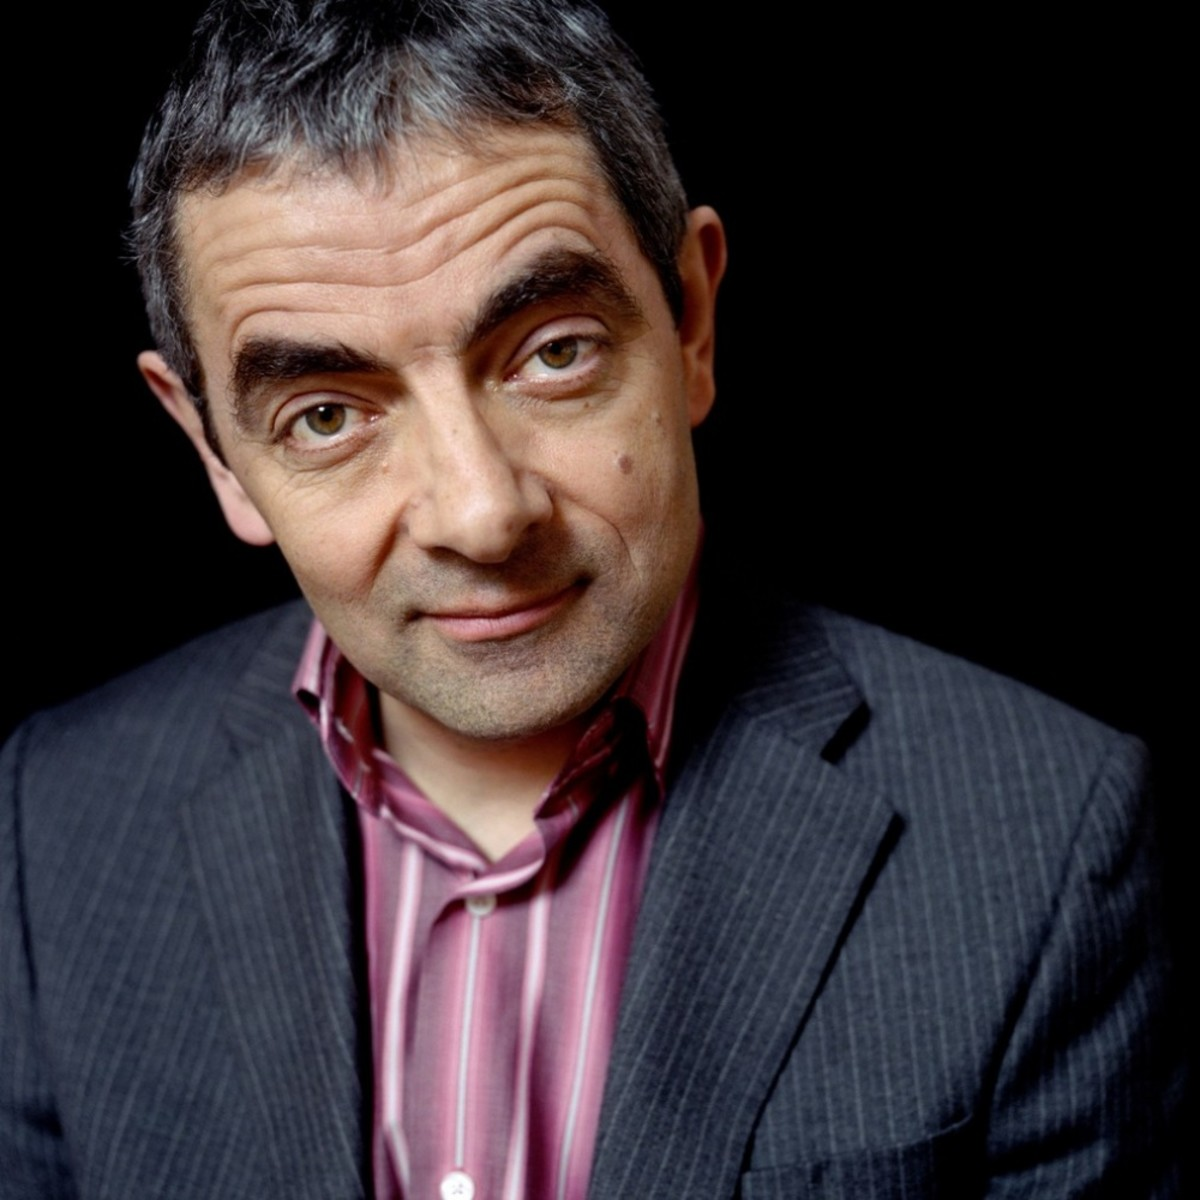 the-real-rowan-atkinson